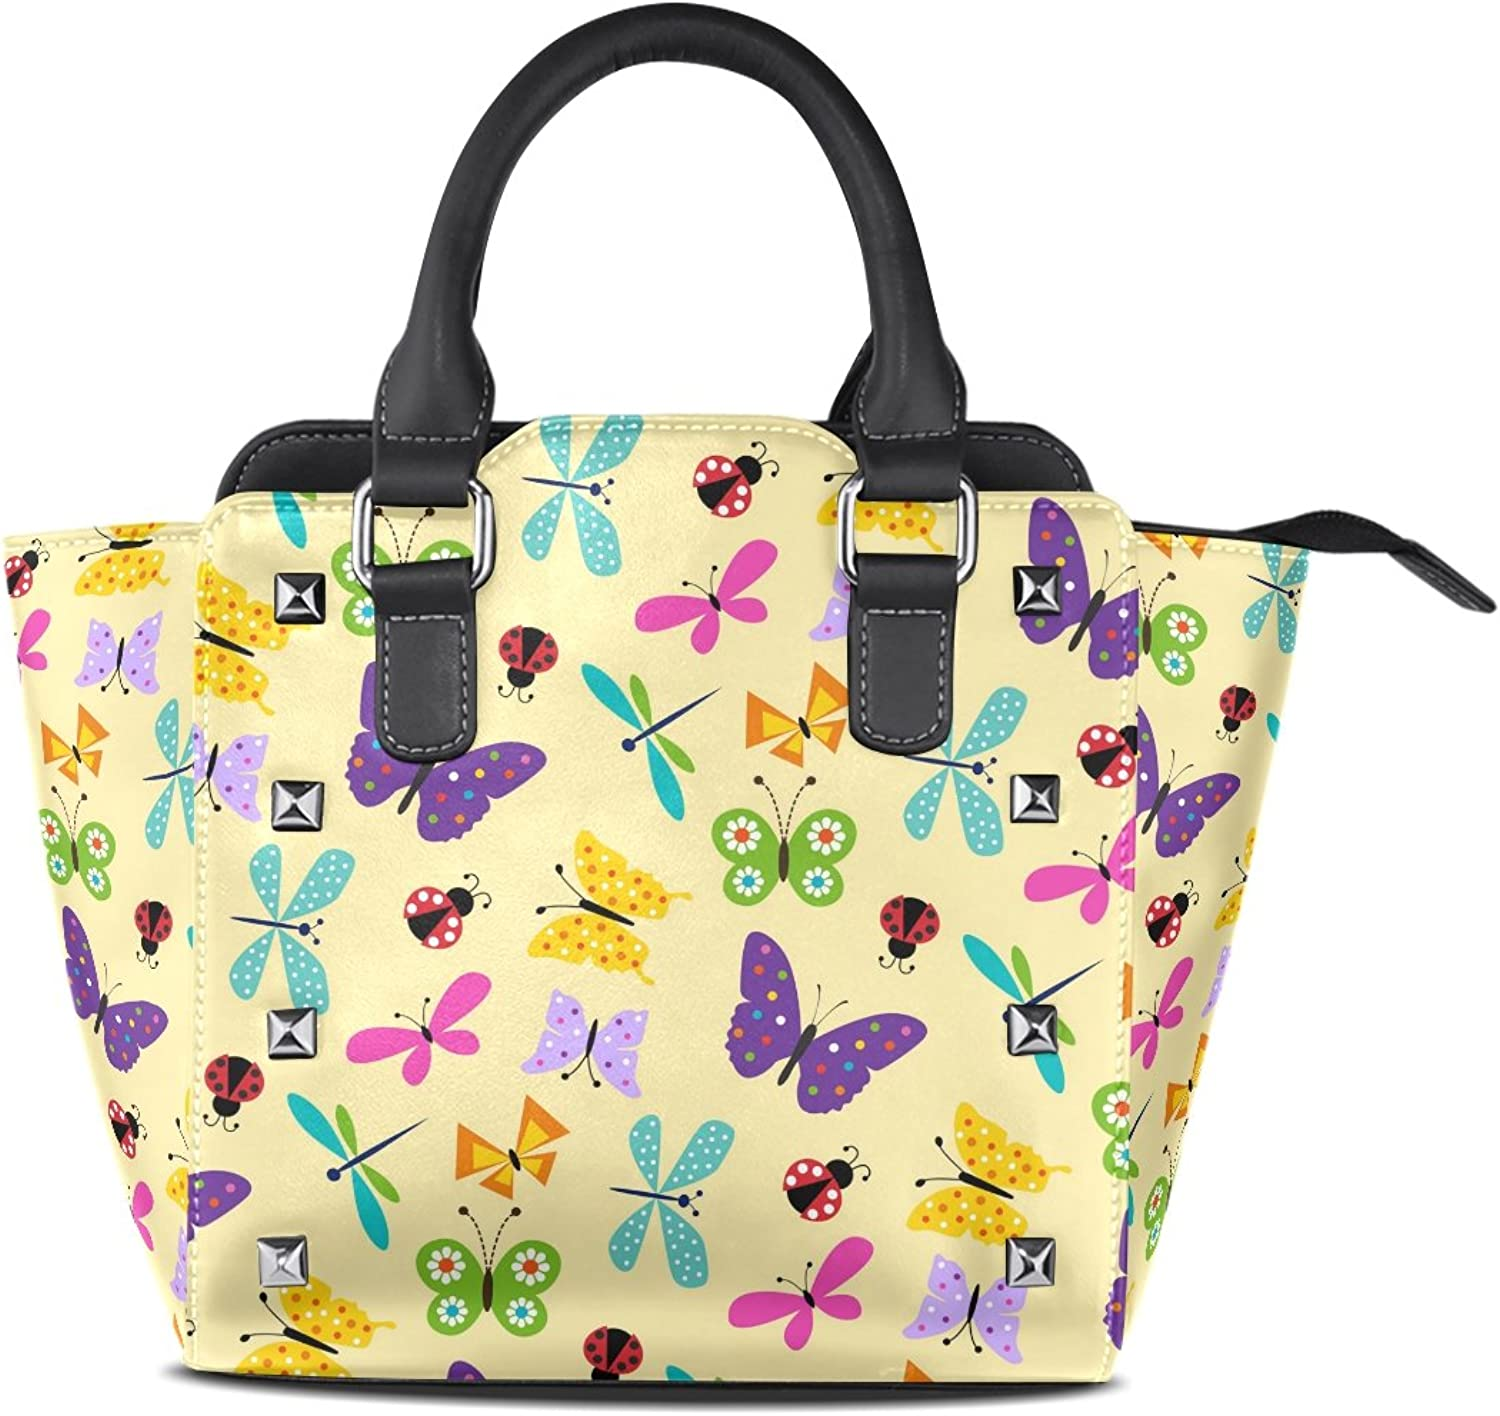 Sunlome Butterfly Ladybug Yellow Print Women's Leather Tote Shoulder Bags Handbags